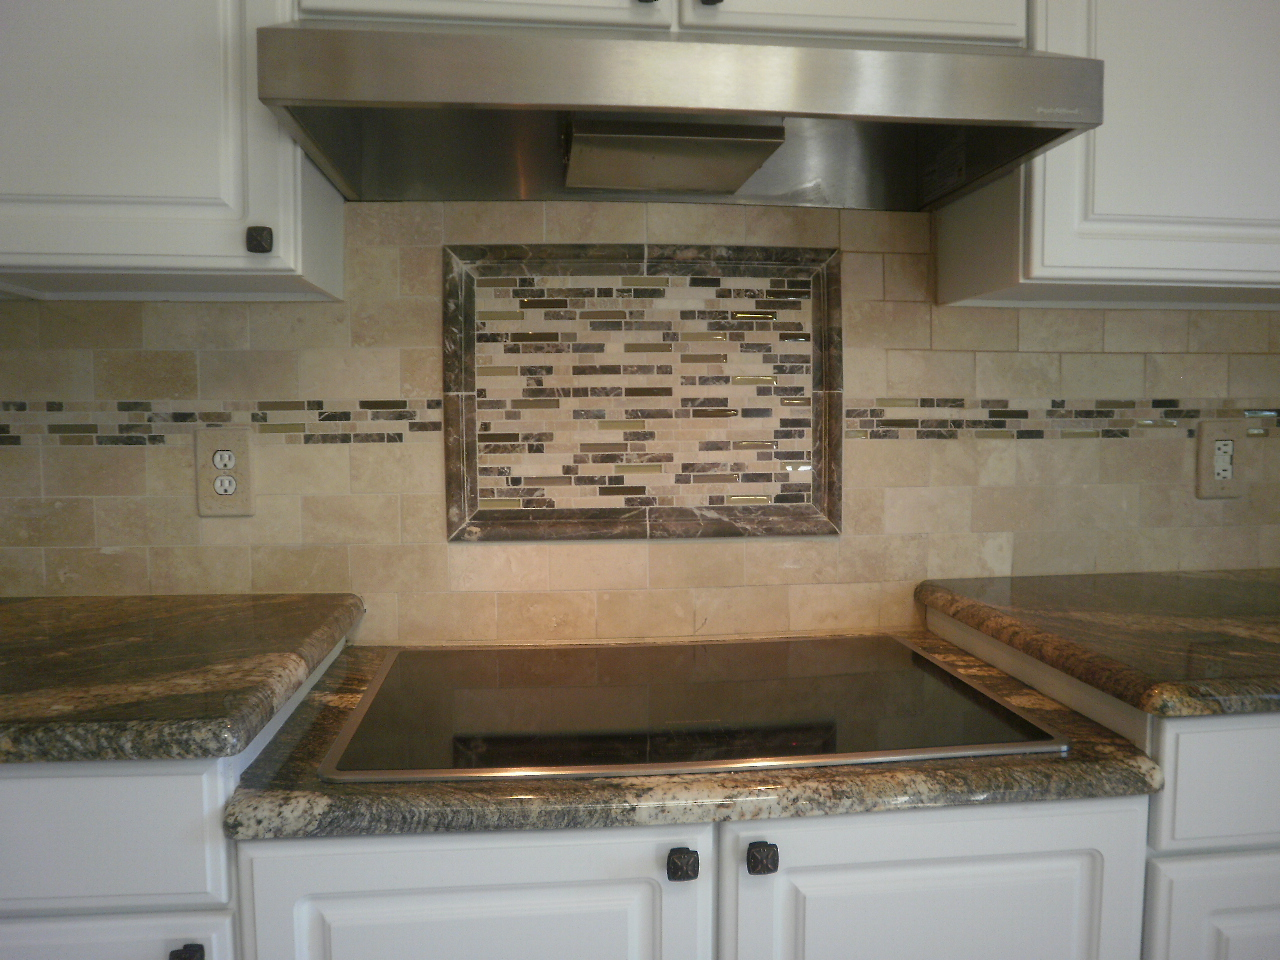 Clipart Backsplash Kitchen.